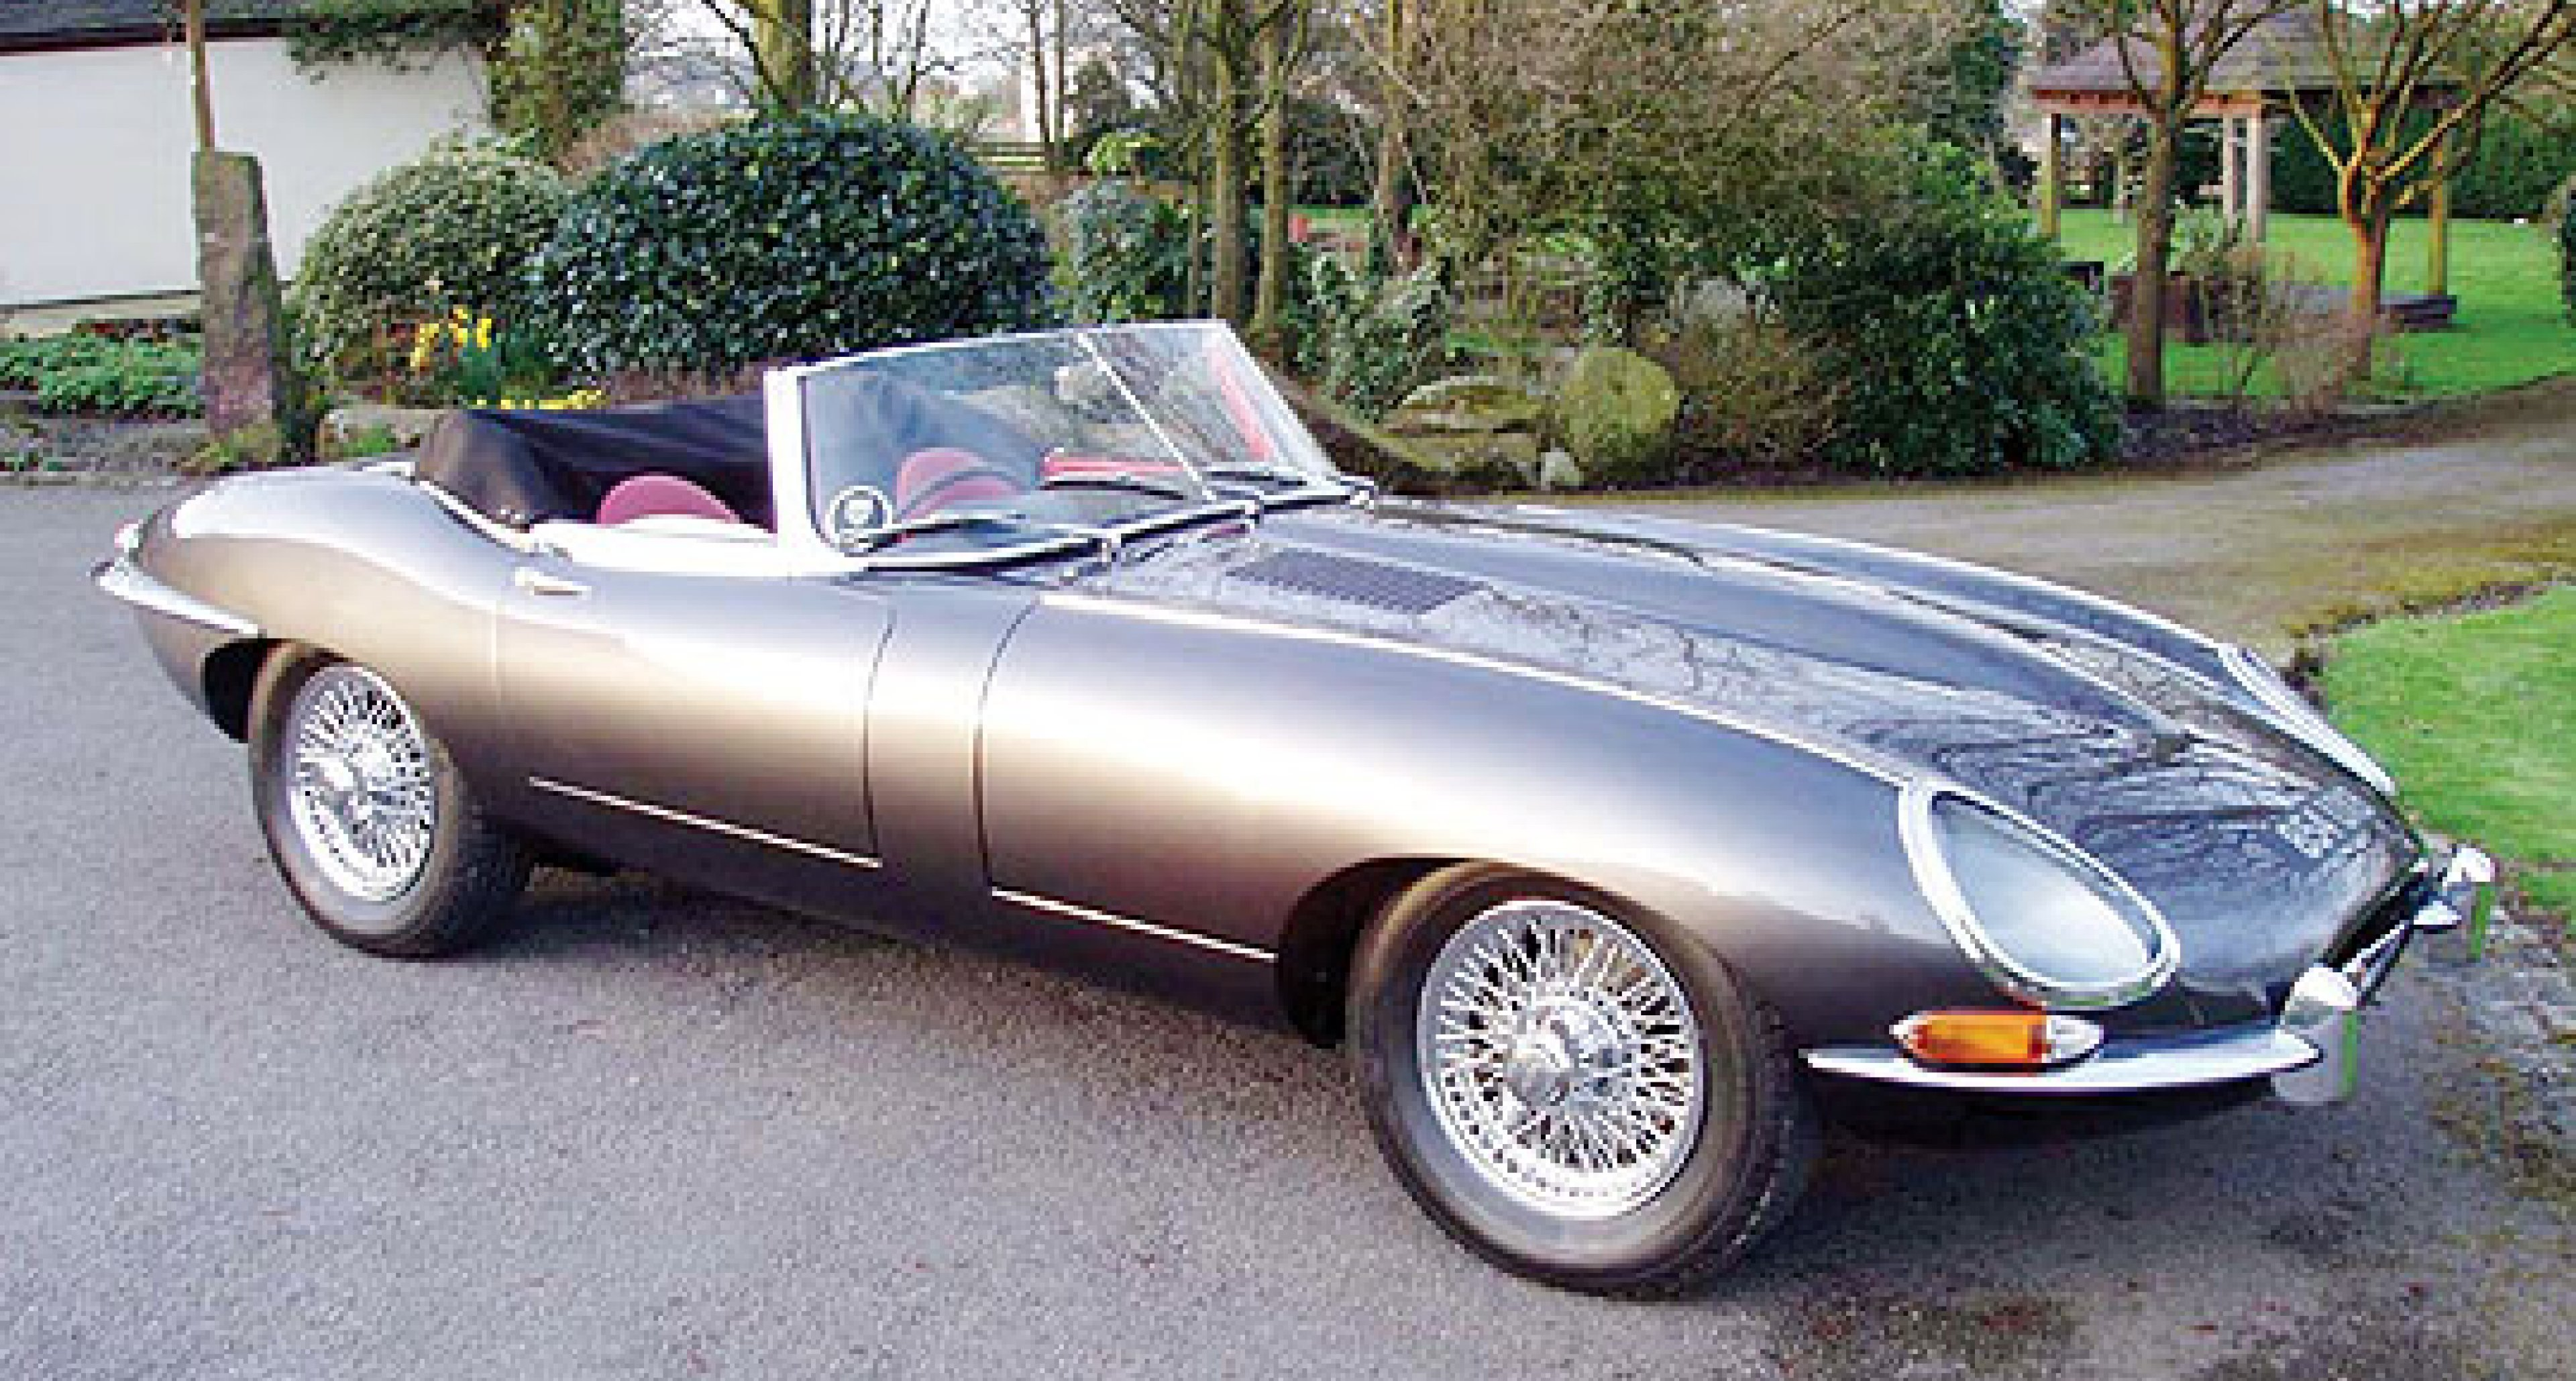 H&H to sell rare ex-Works Healey Silverstone